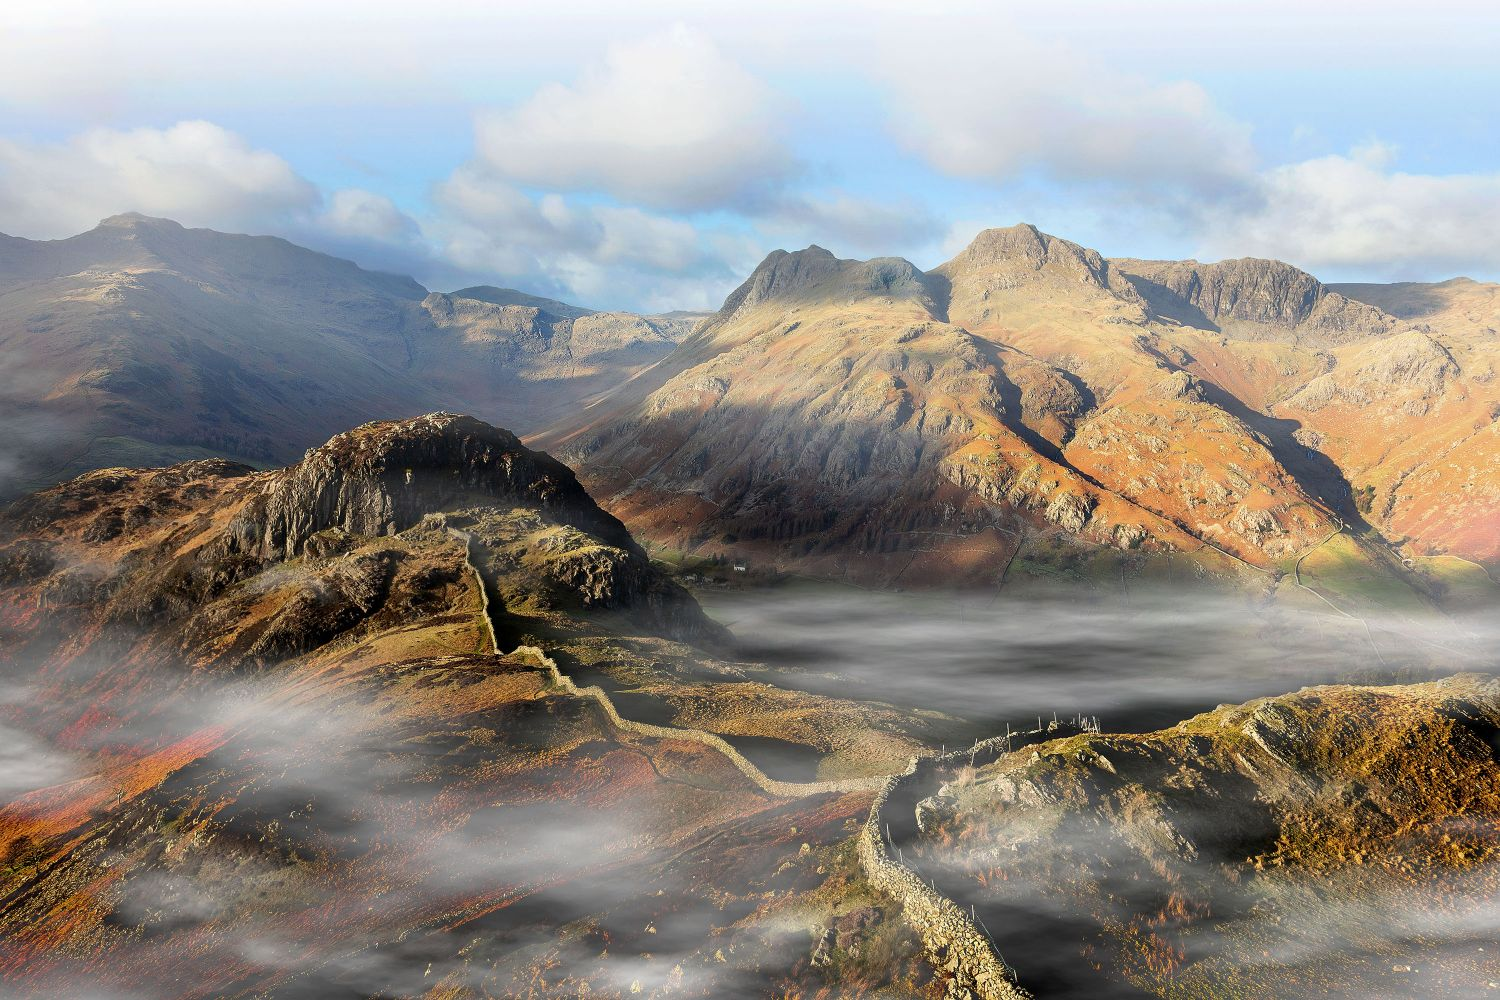 Early morning mists surrounds the Langdale Pikes by Martin Lawrence